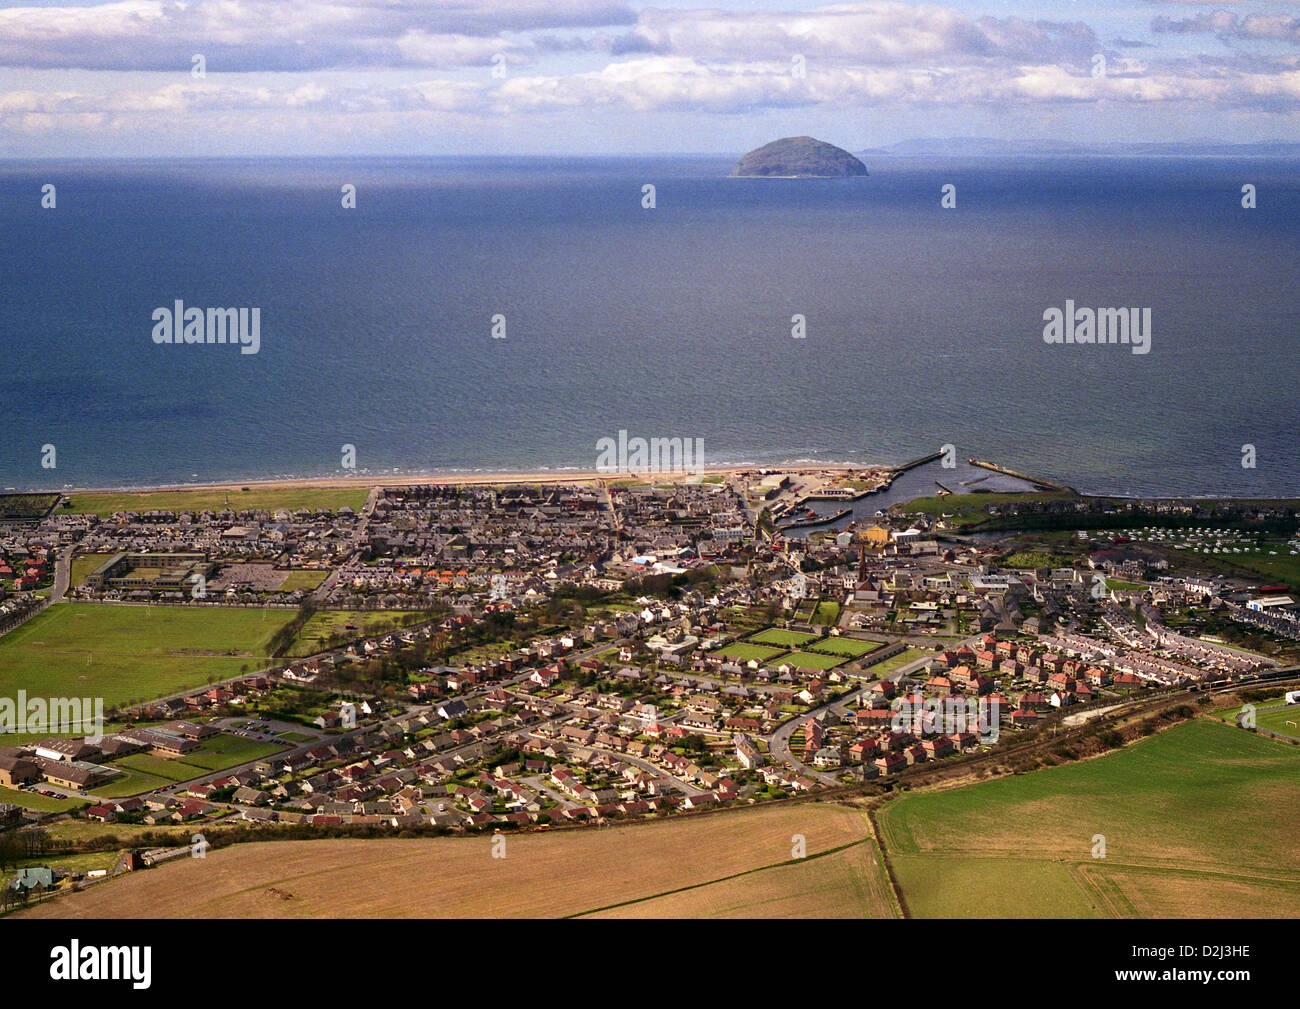 Aerial view of Scottish town of Girvan with the island of Ailsa Craig in the distance - Stock Image